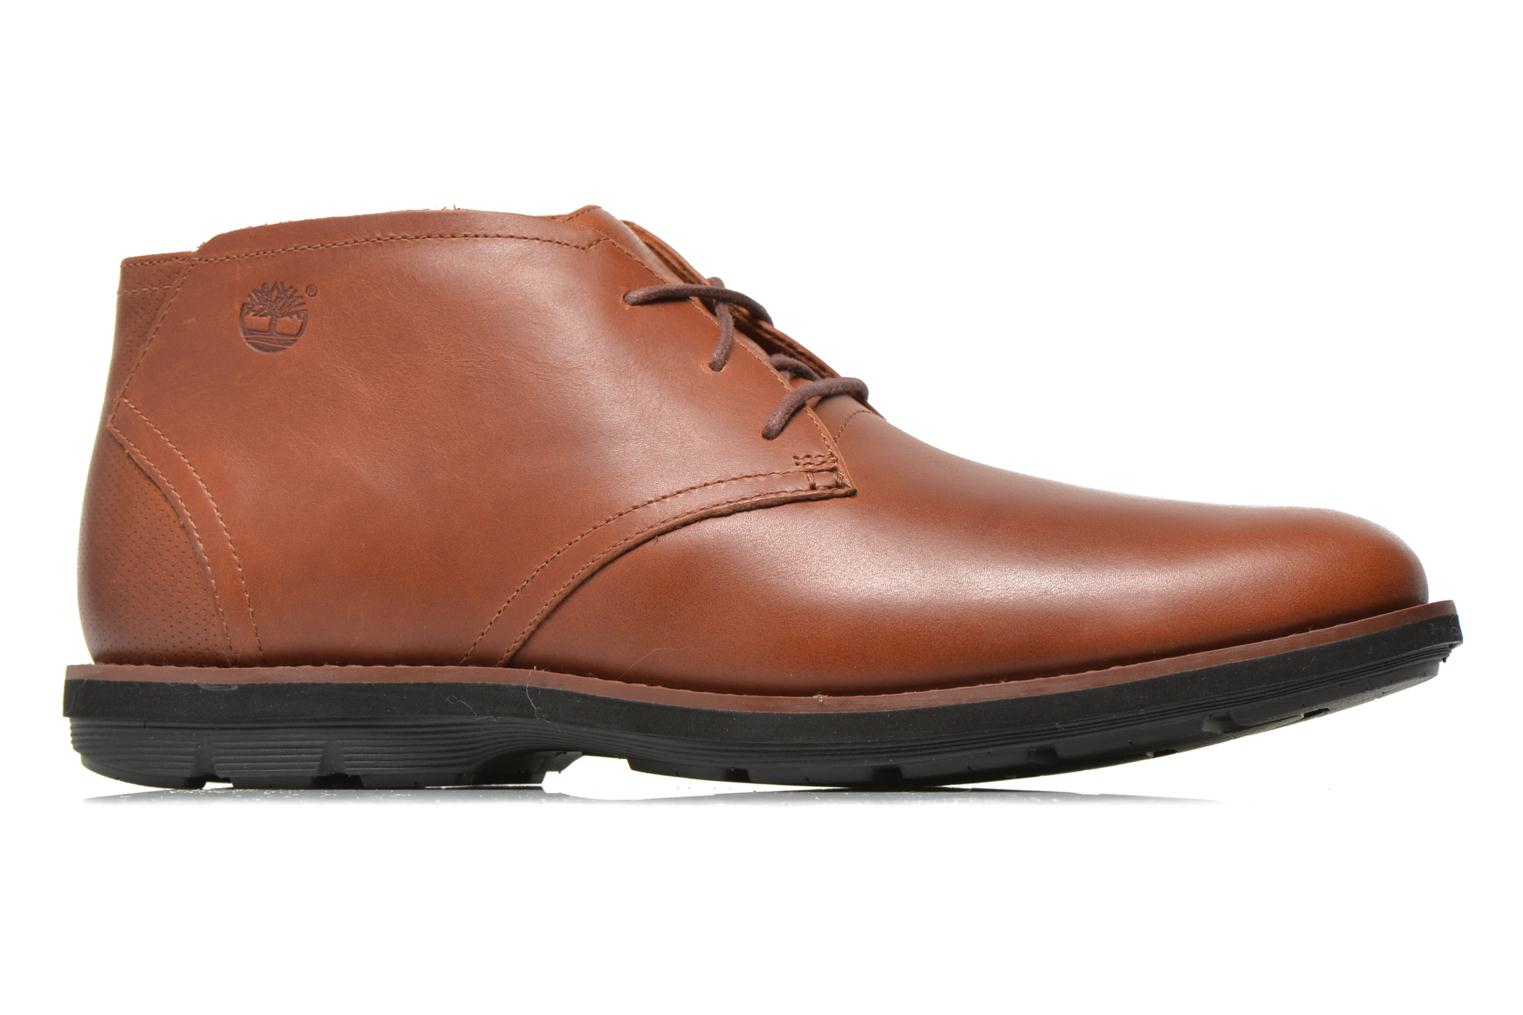 Chaussures à lacets Timberland Earthkeepers Kempton Chukka Marron vue derrière